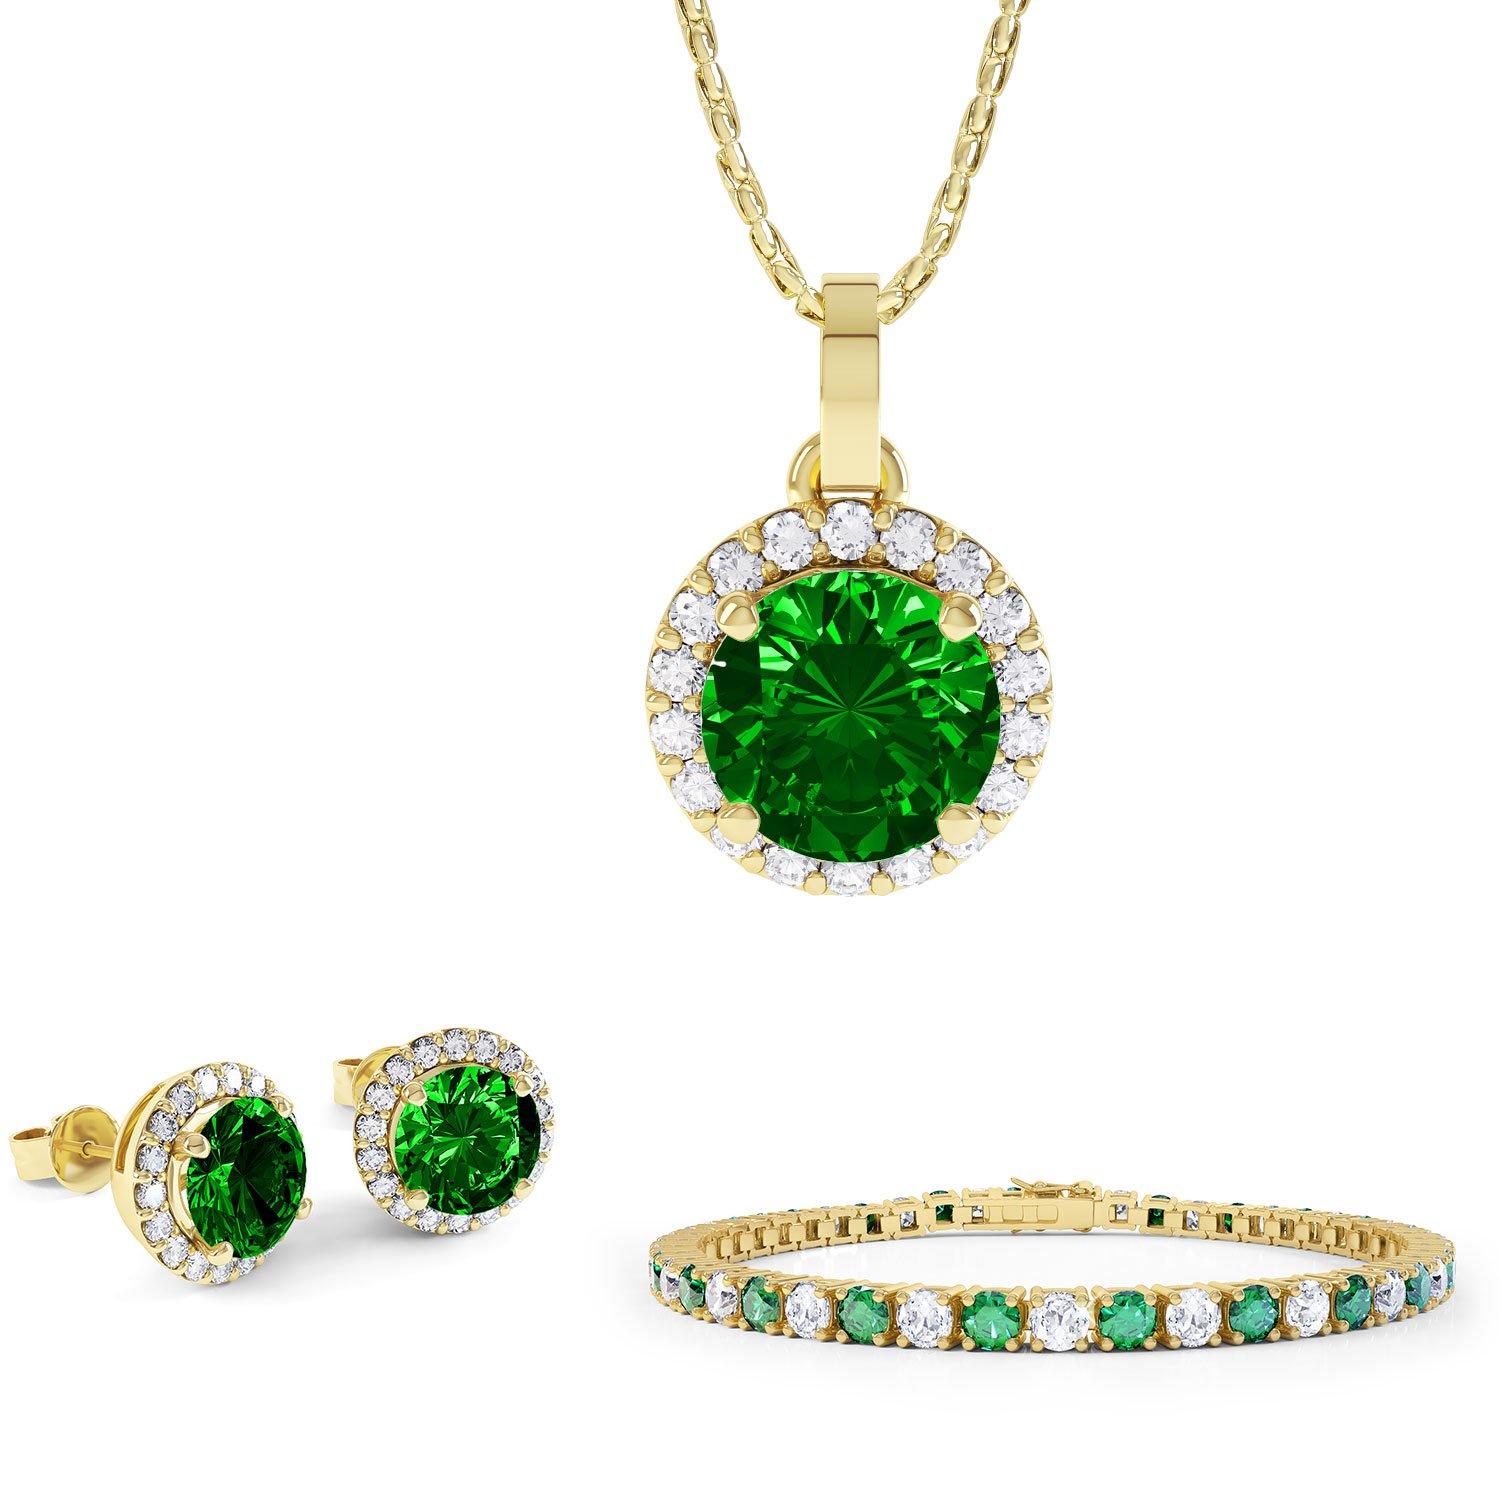 Eternity Emerald 18ct Gold Vermeil Jewelry Set with Pendant